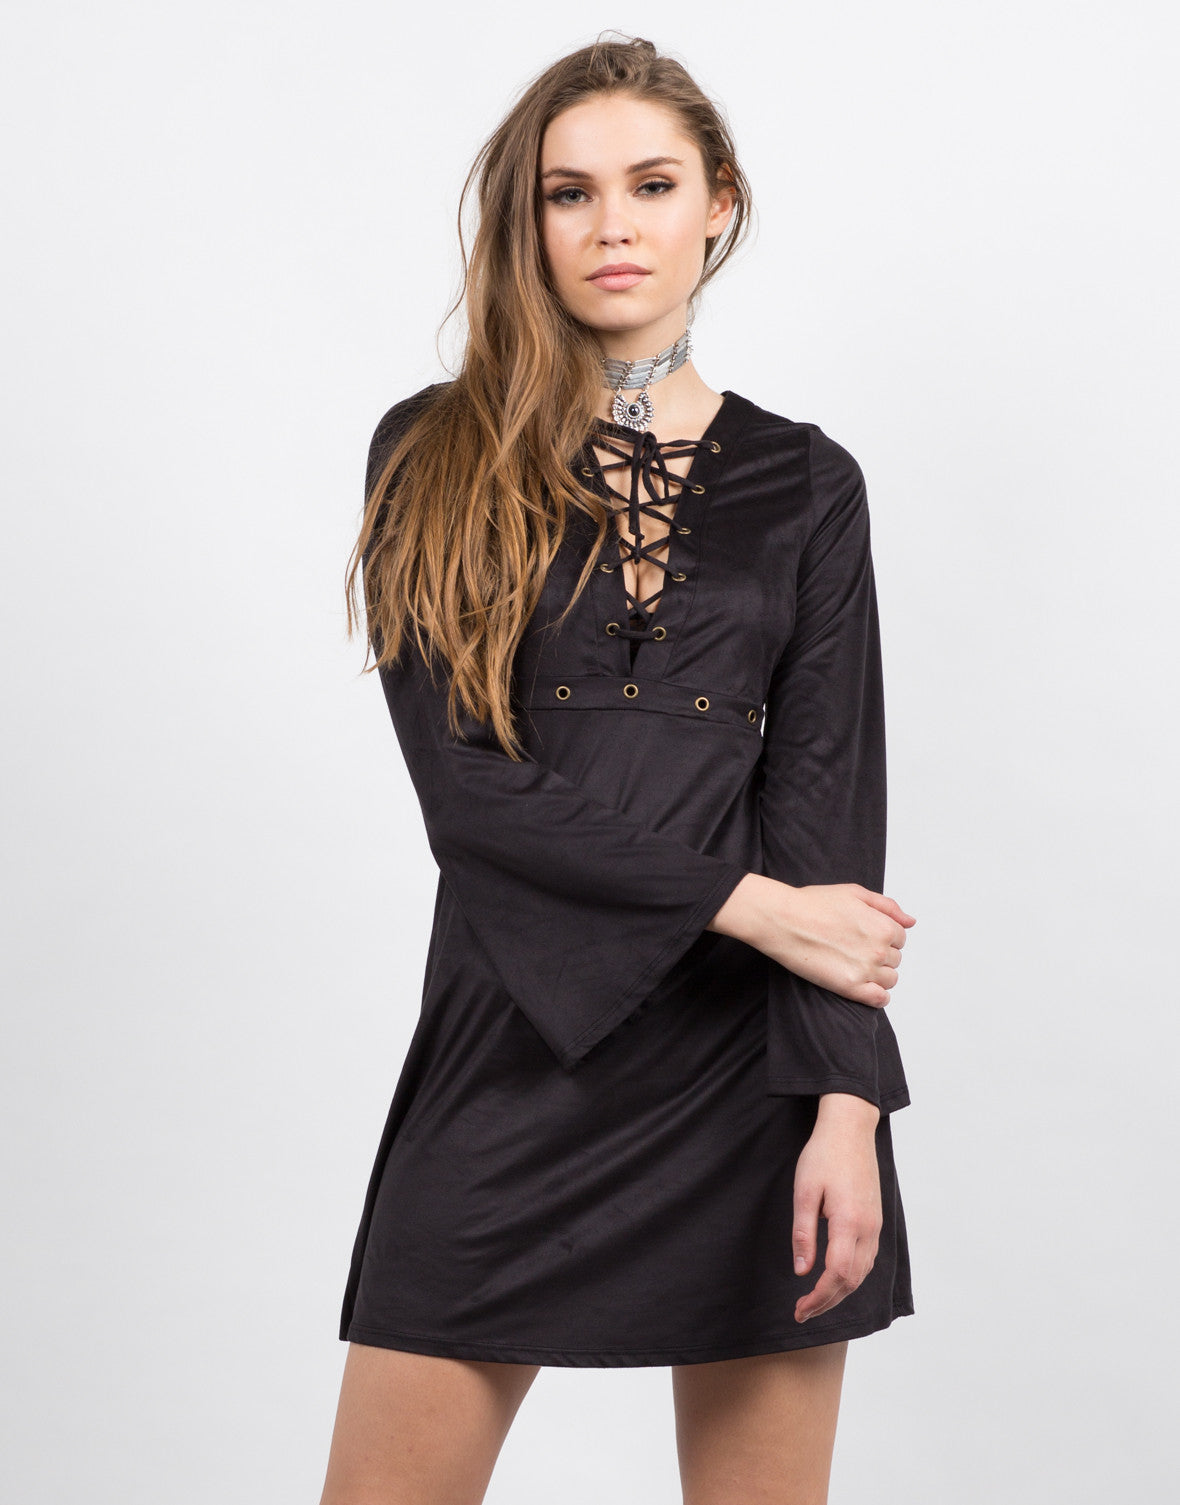 Front View of Lace Up and Suede Dress